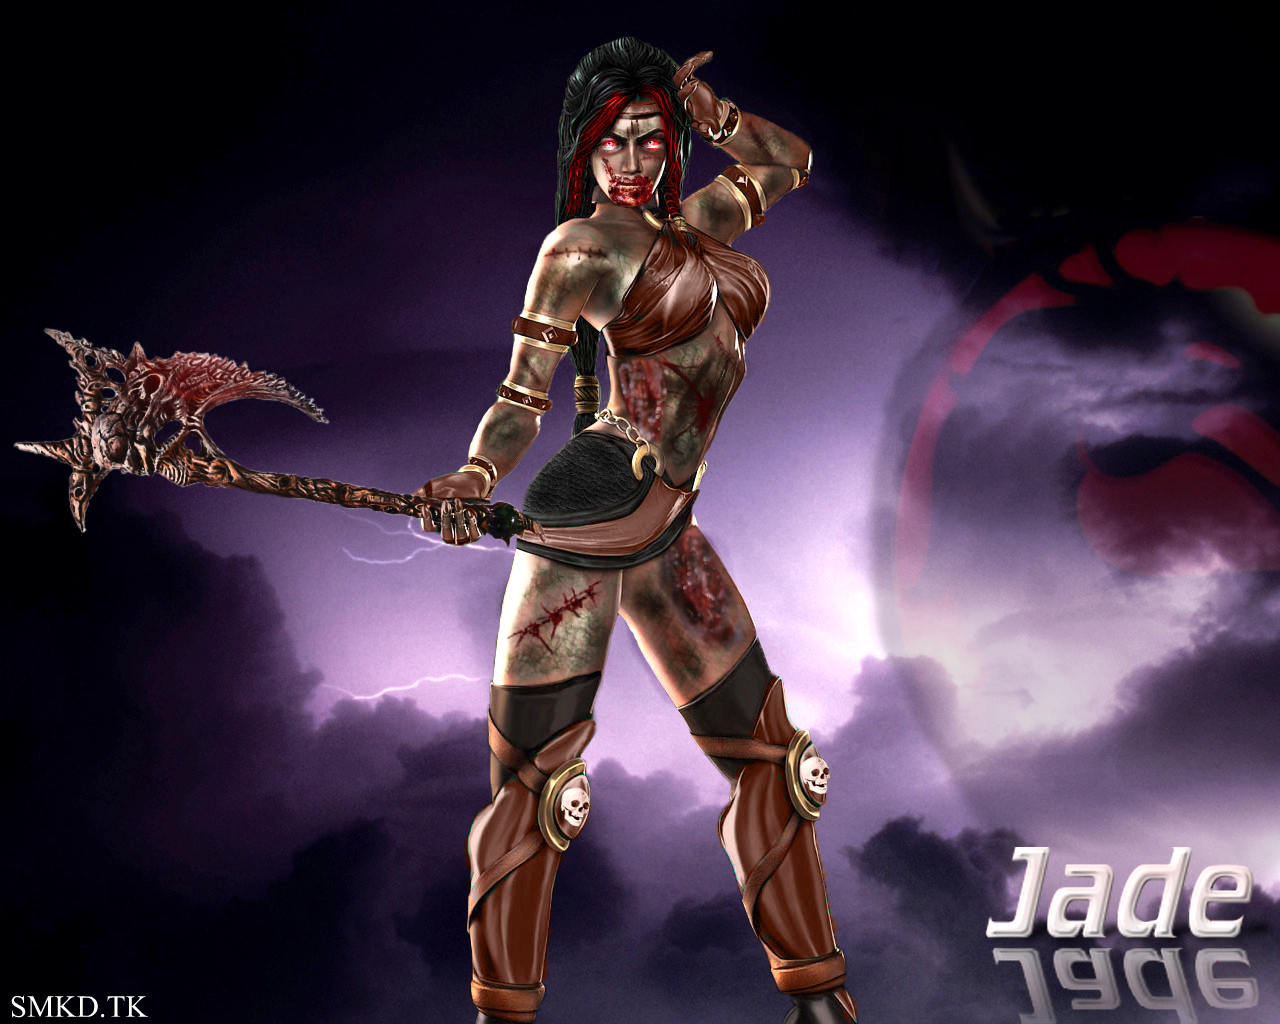 Mortal kombat girls nake mod on ps nude natural pornstar